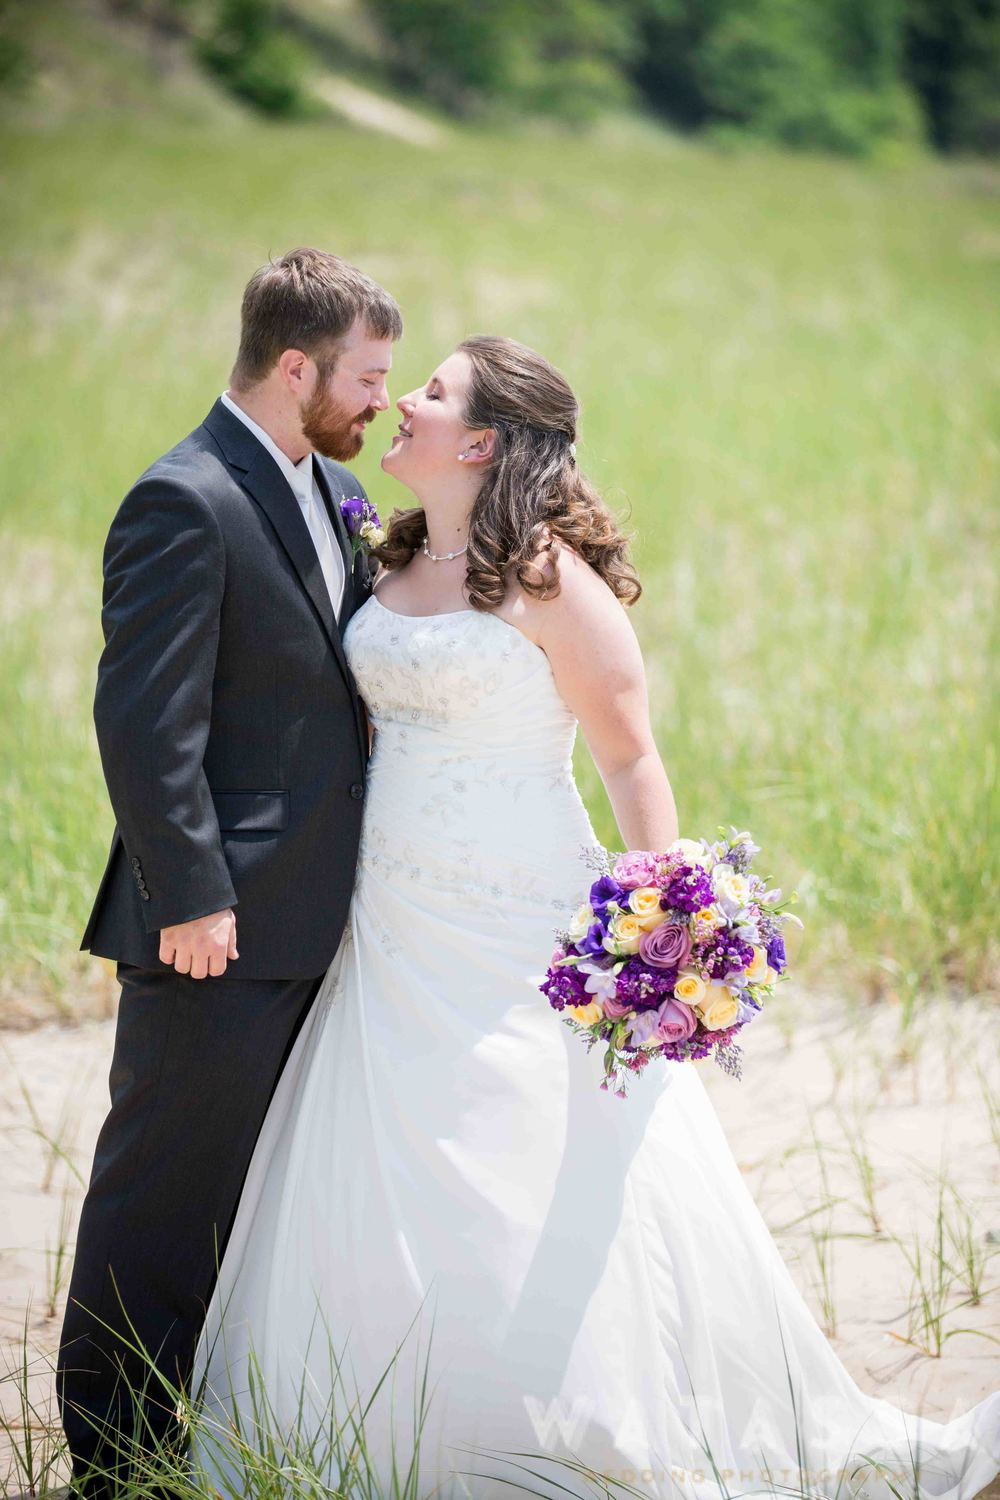 Leah and Nick were high school and then college sweethearts. They were married in Muskegon (where they both grew up) and we had a rock solid amazing day with these two.